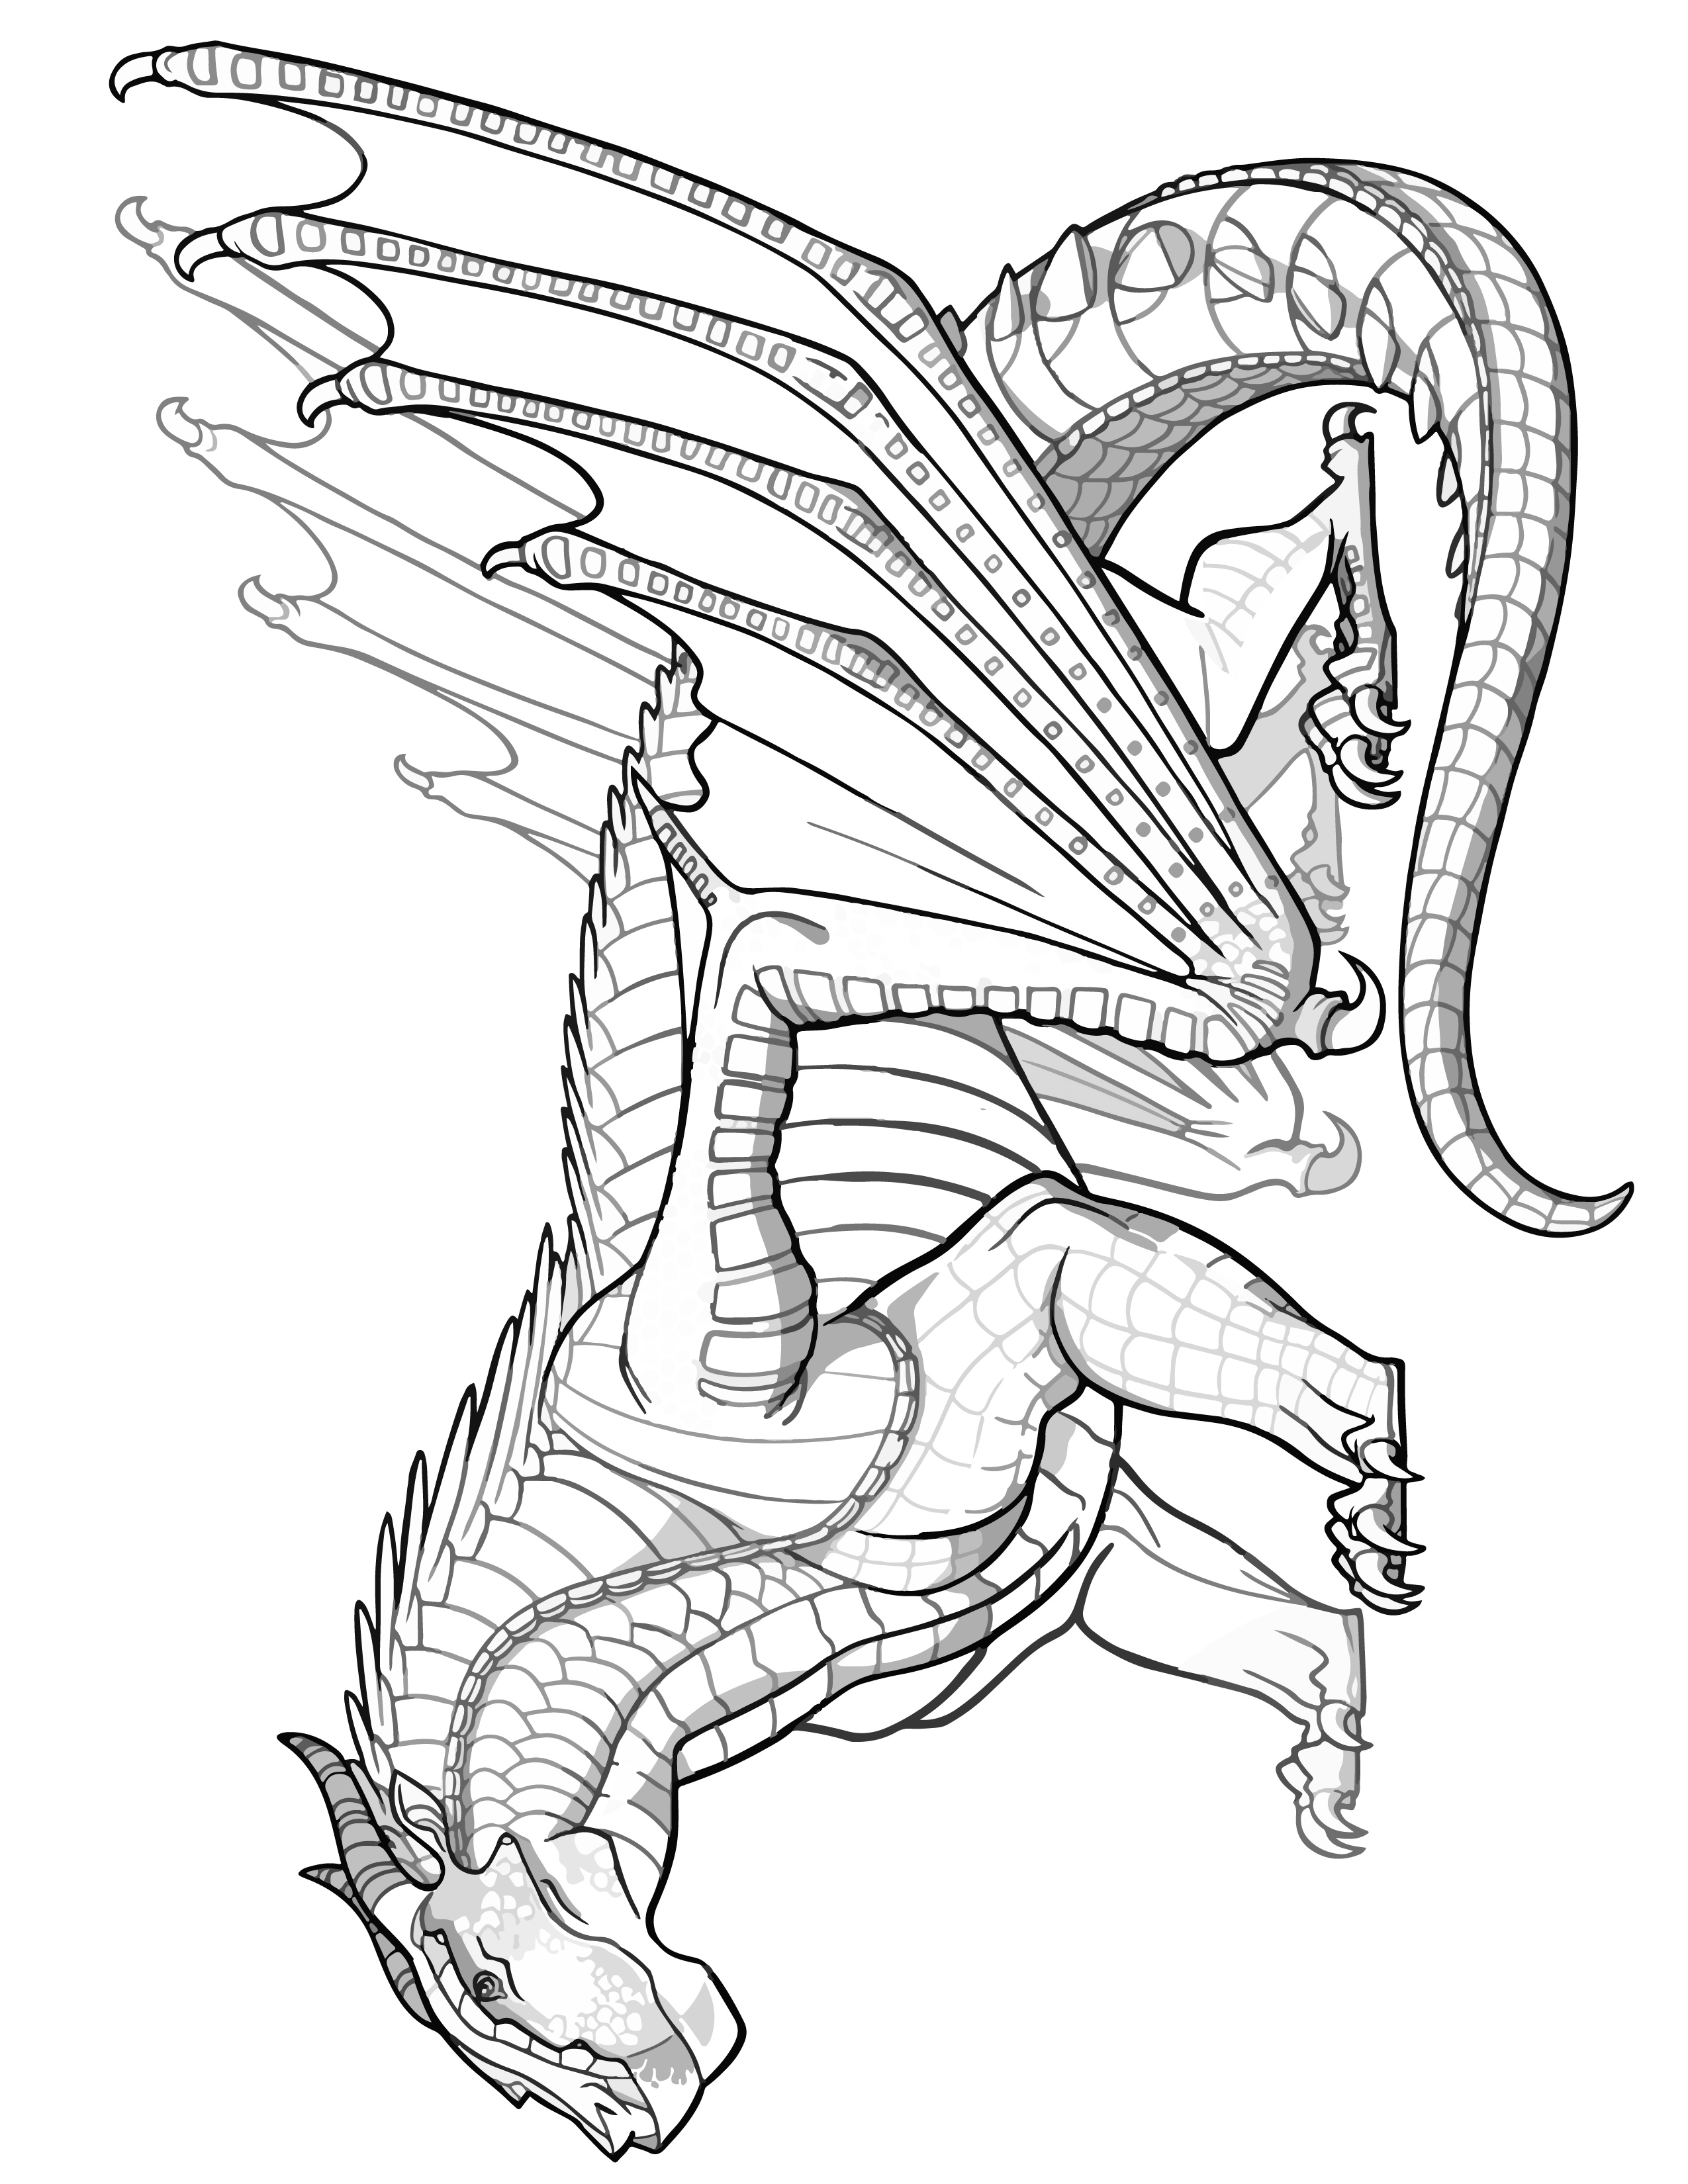 MUDWING DRAGON Coloring Page Transparent Wings of Fire Coloring SHEET Pyrrhian Dragon Tribe